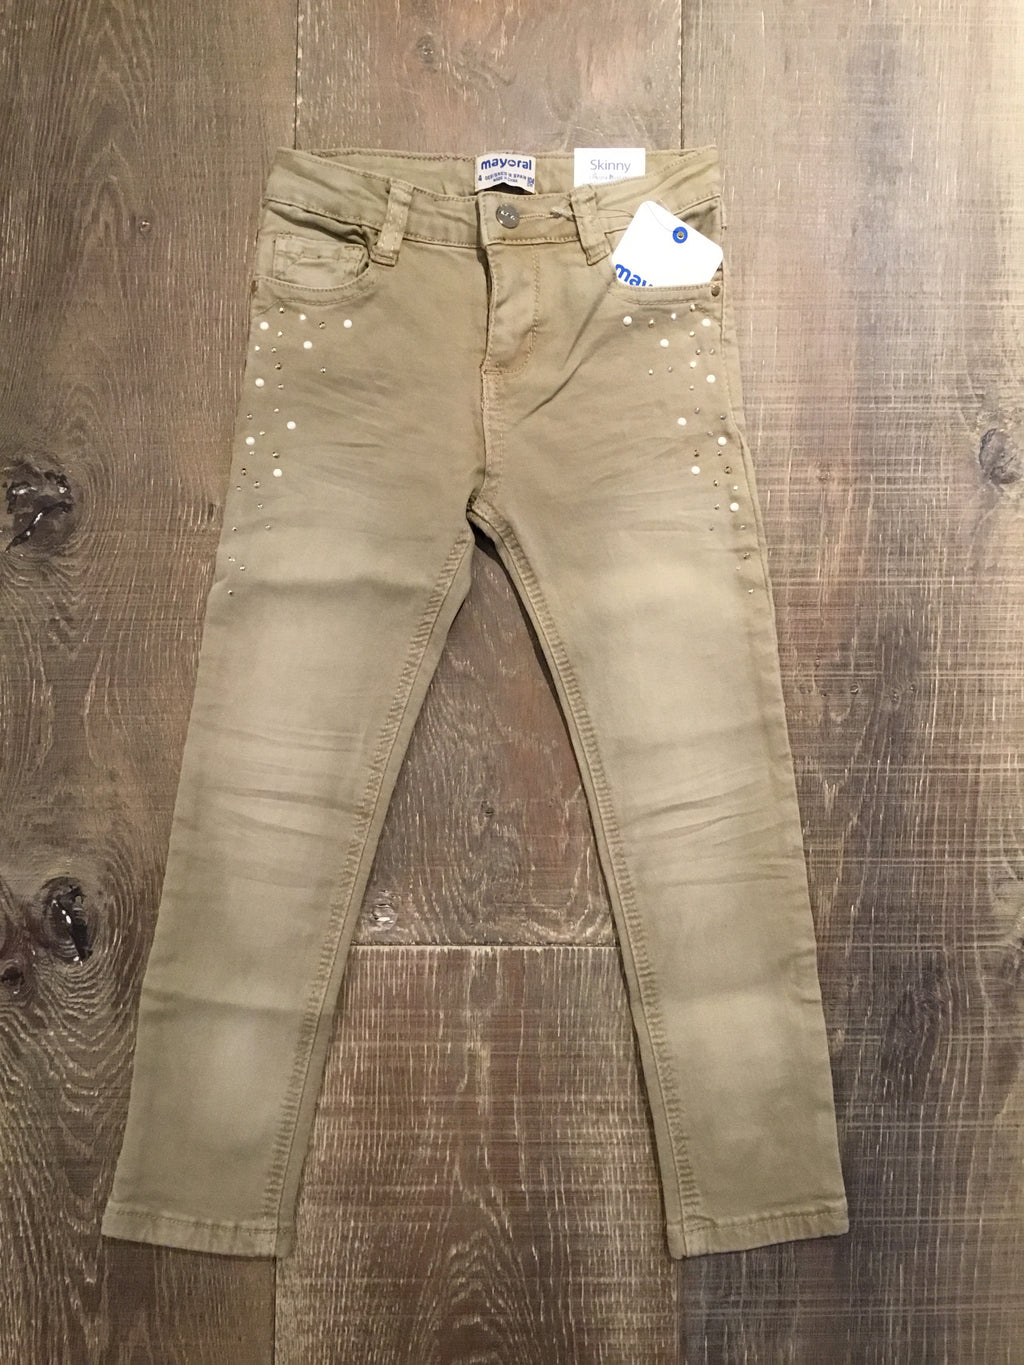 Jeweled Khaki Skinny Pants